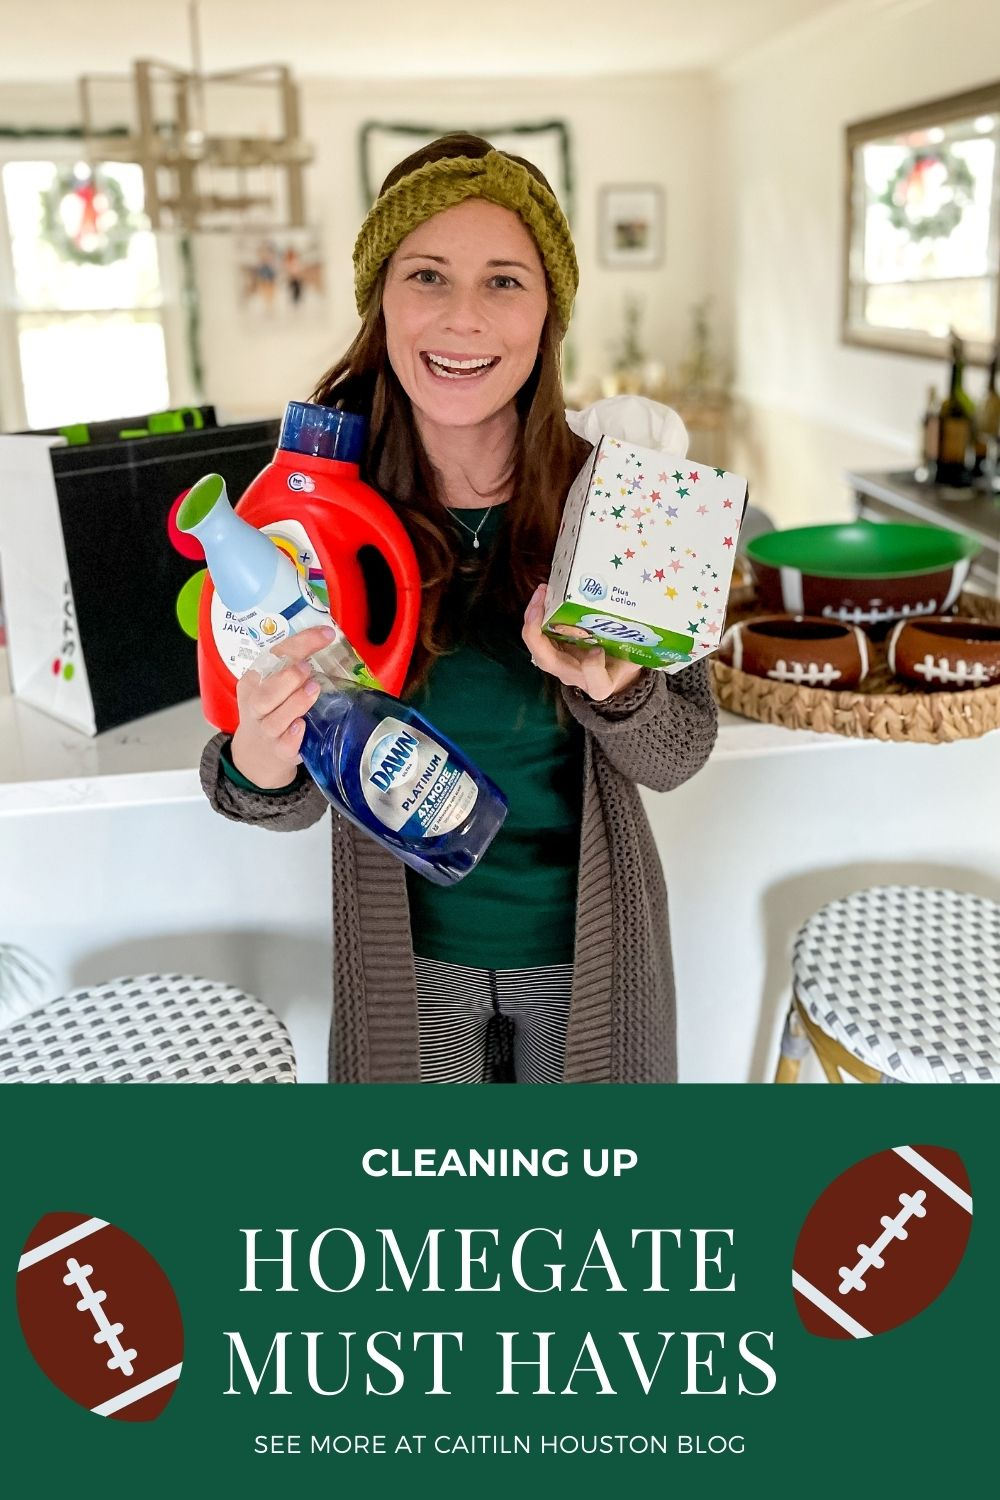 Must haves for Homegate Clean Up Tide, Febreeze, Dawn, Puffs